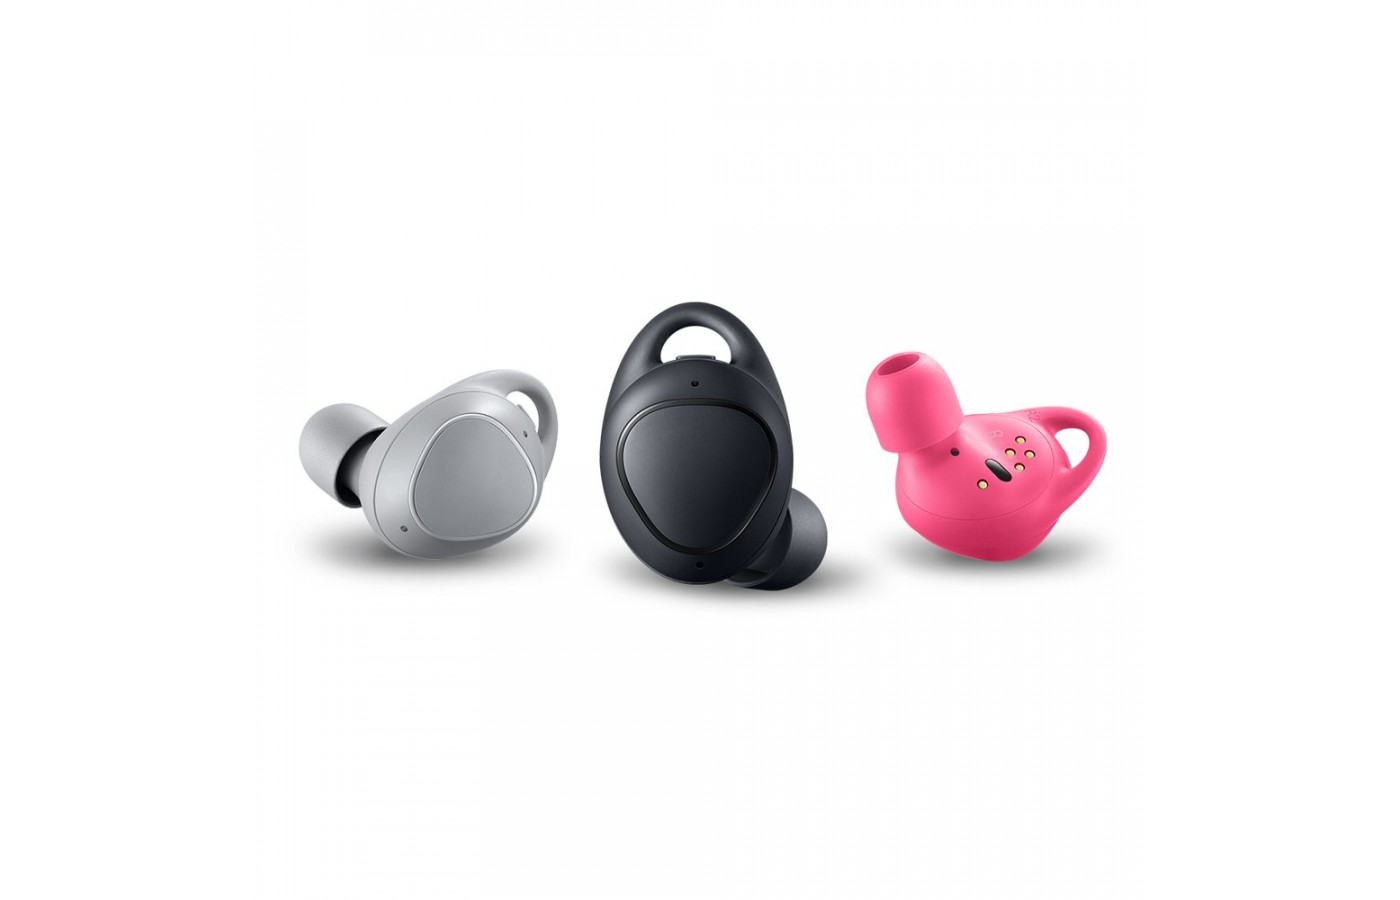 They are part of the 'True Wireless' technology earbuds built for the Android.